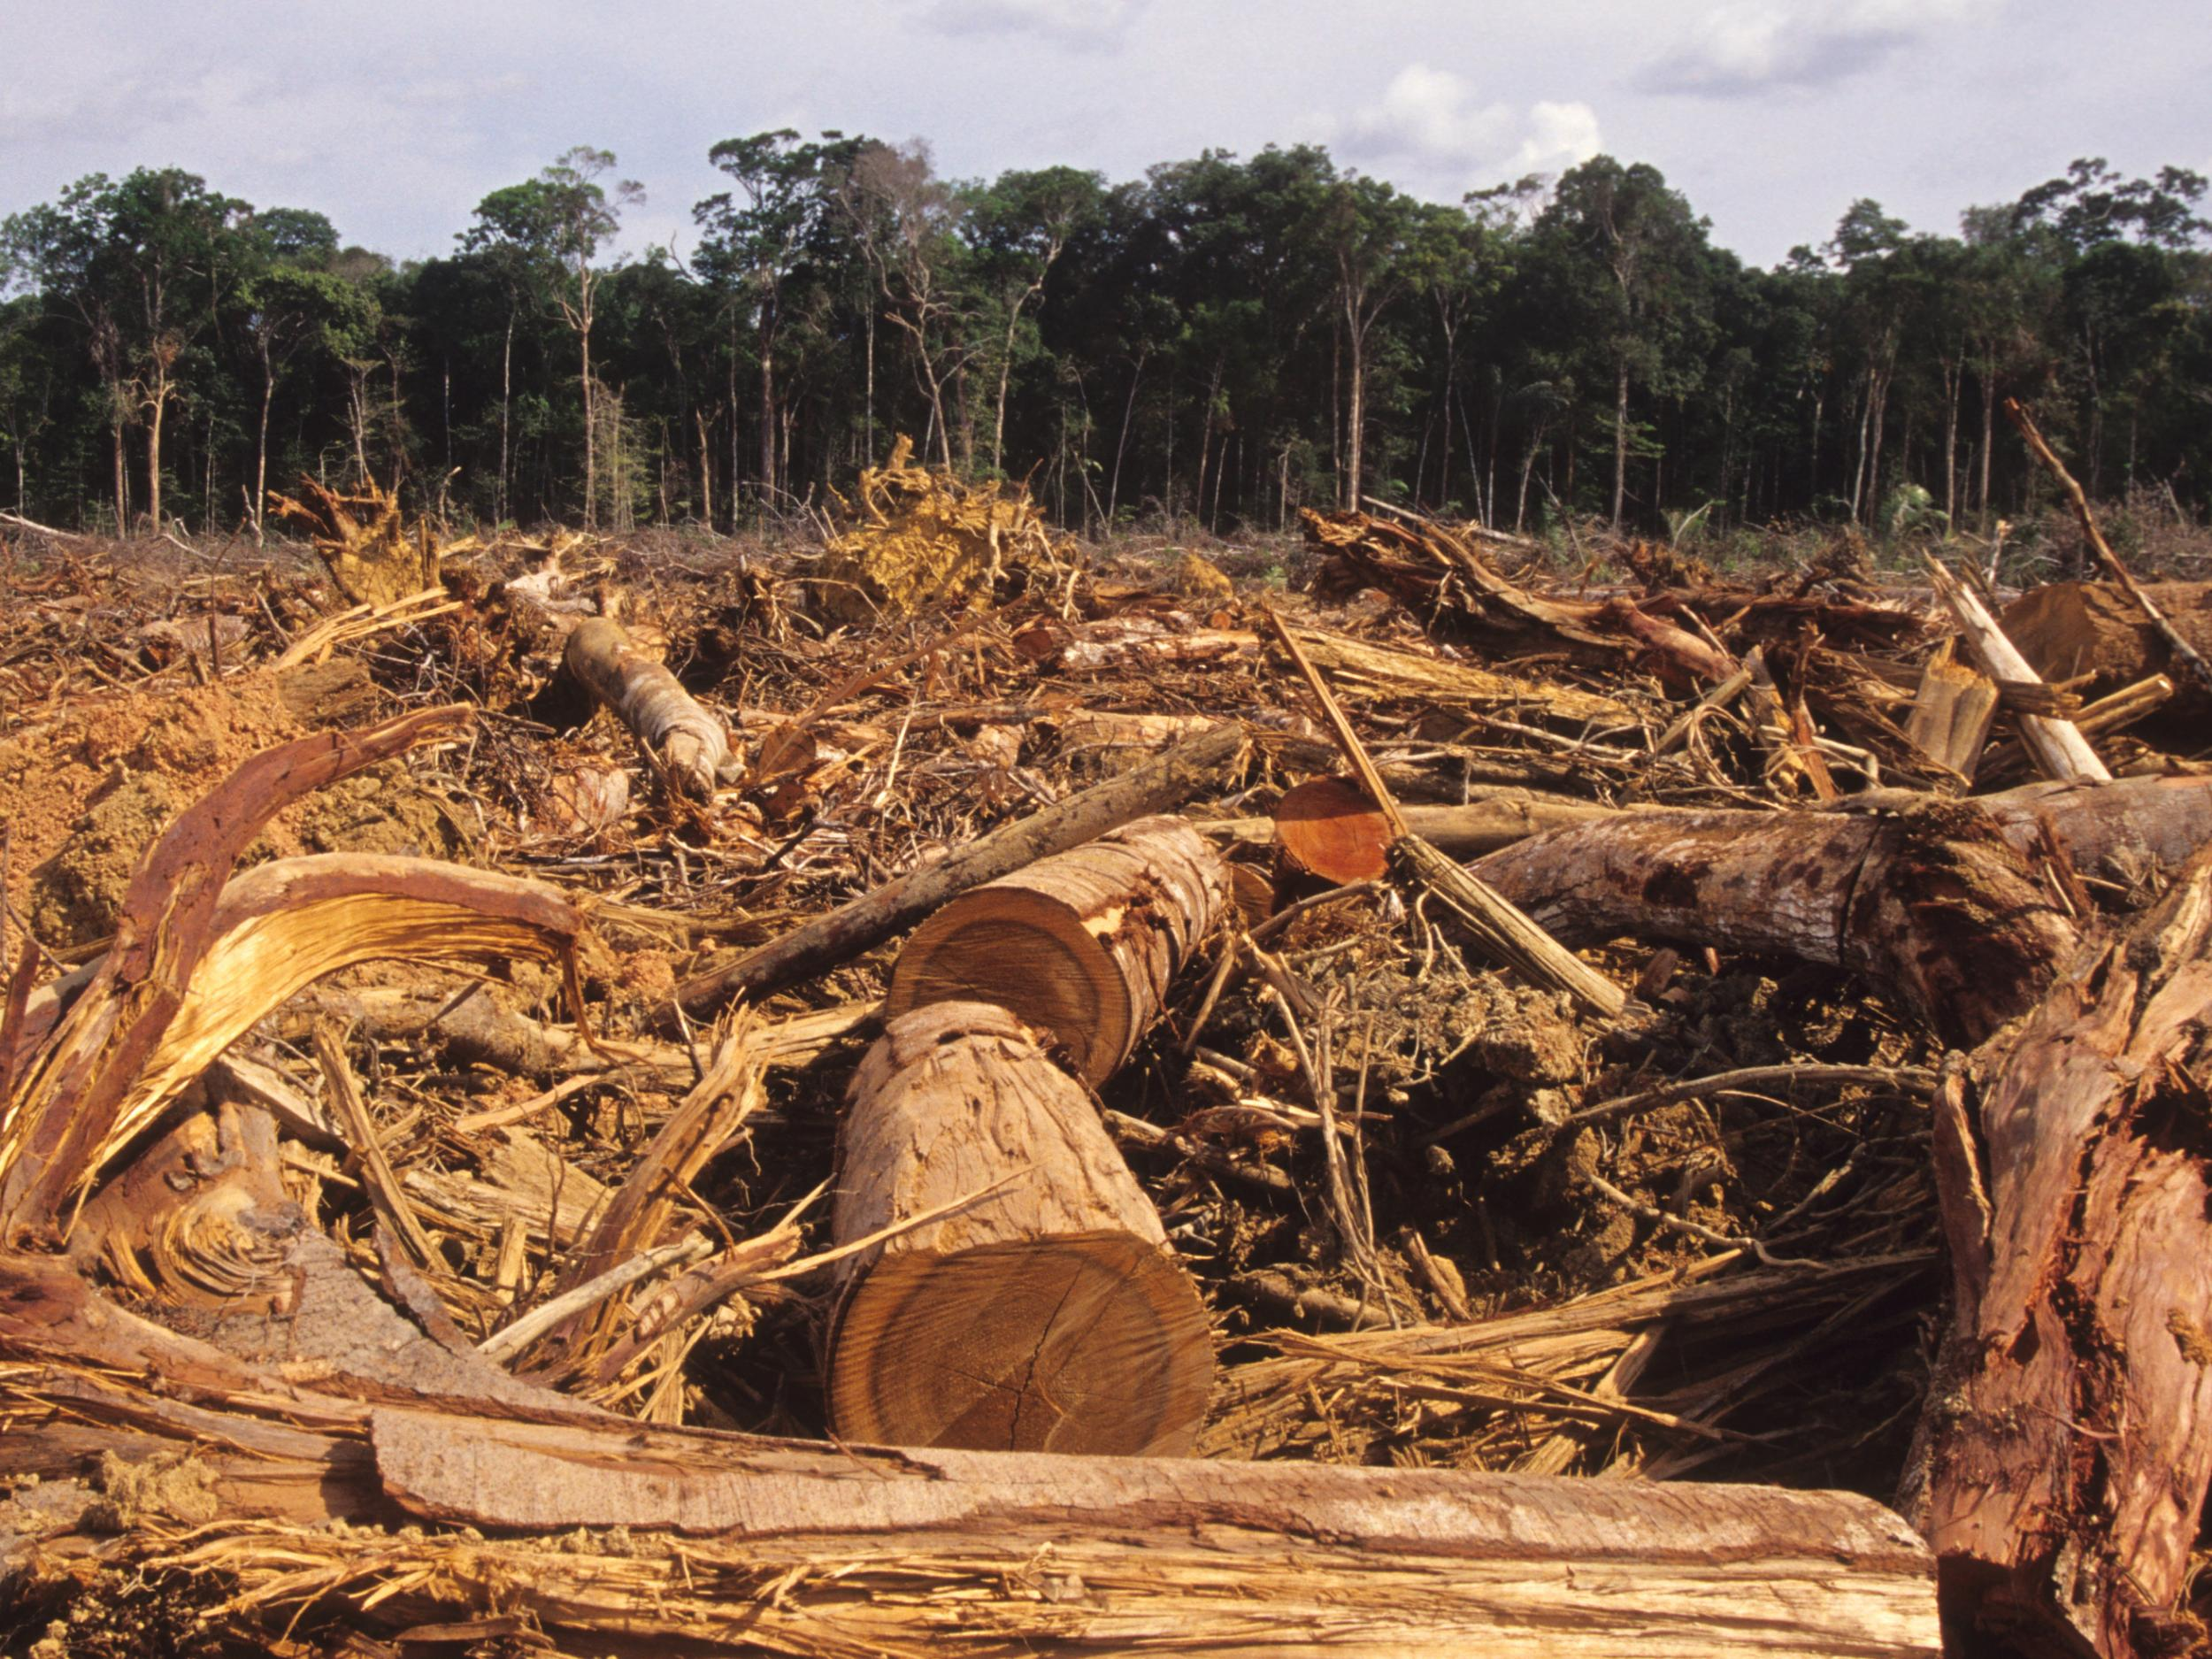 Deforestation - latest news, breaking stories and comment - The